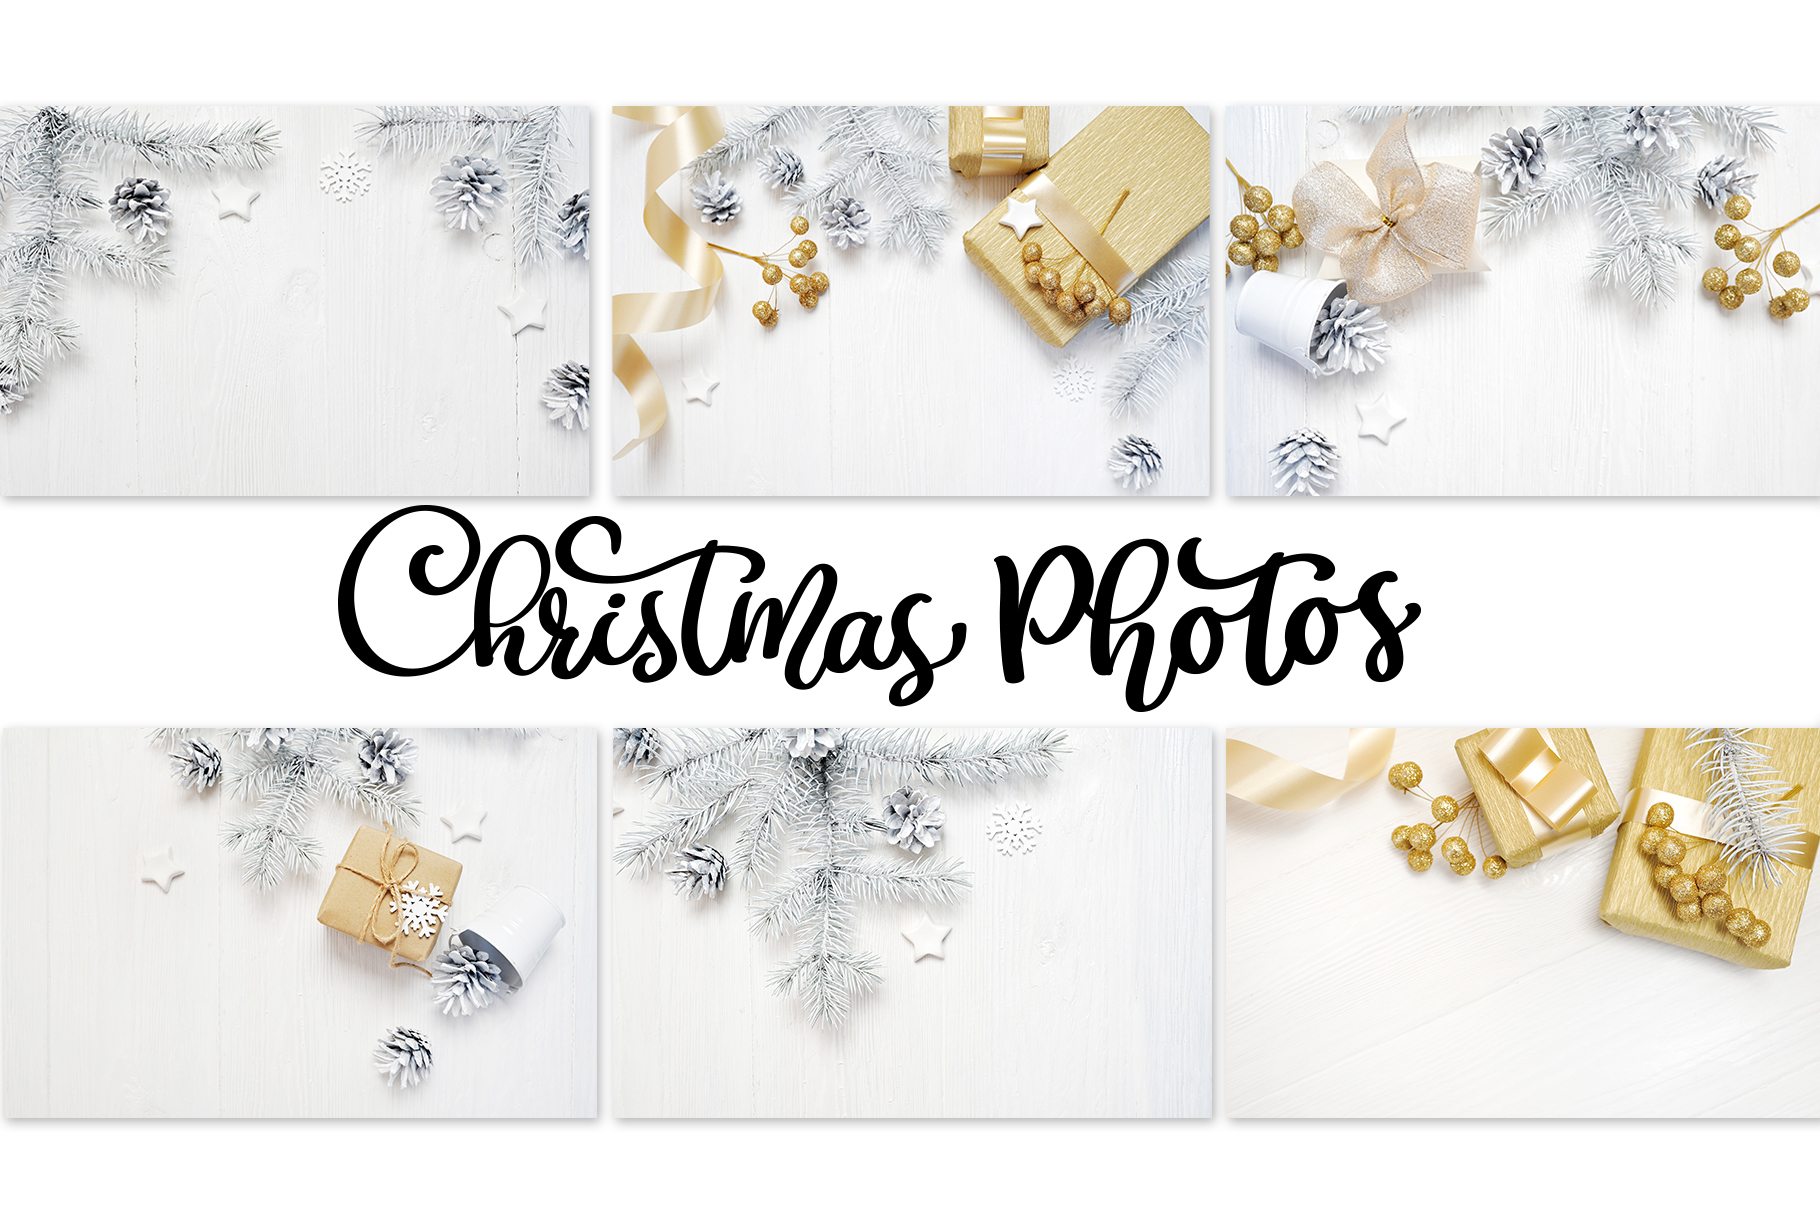 Christmas Photos Set Graphic Holidays By Happy Letters - Image 2